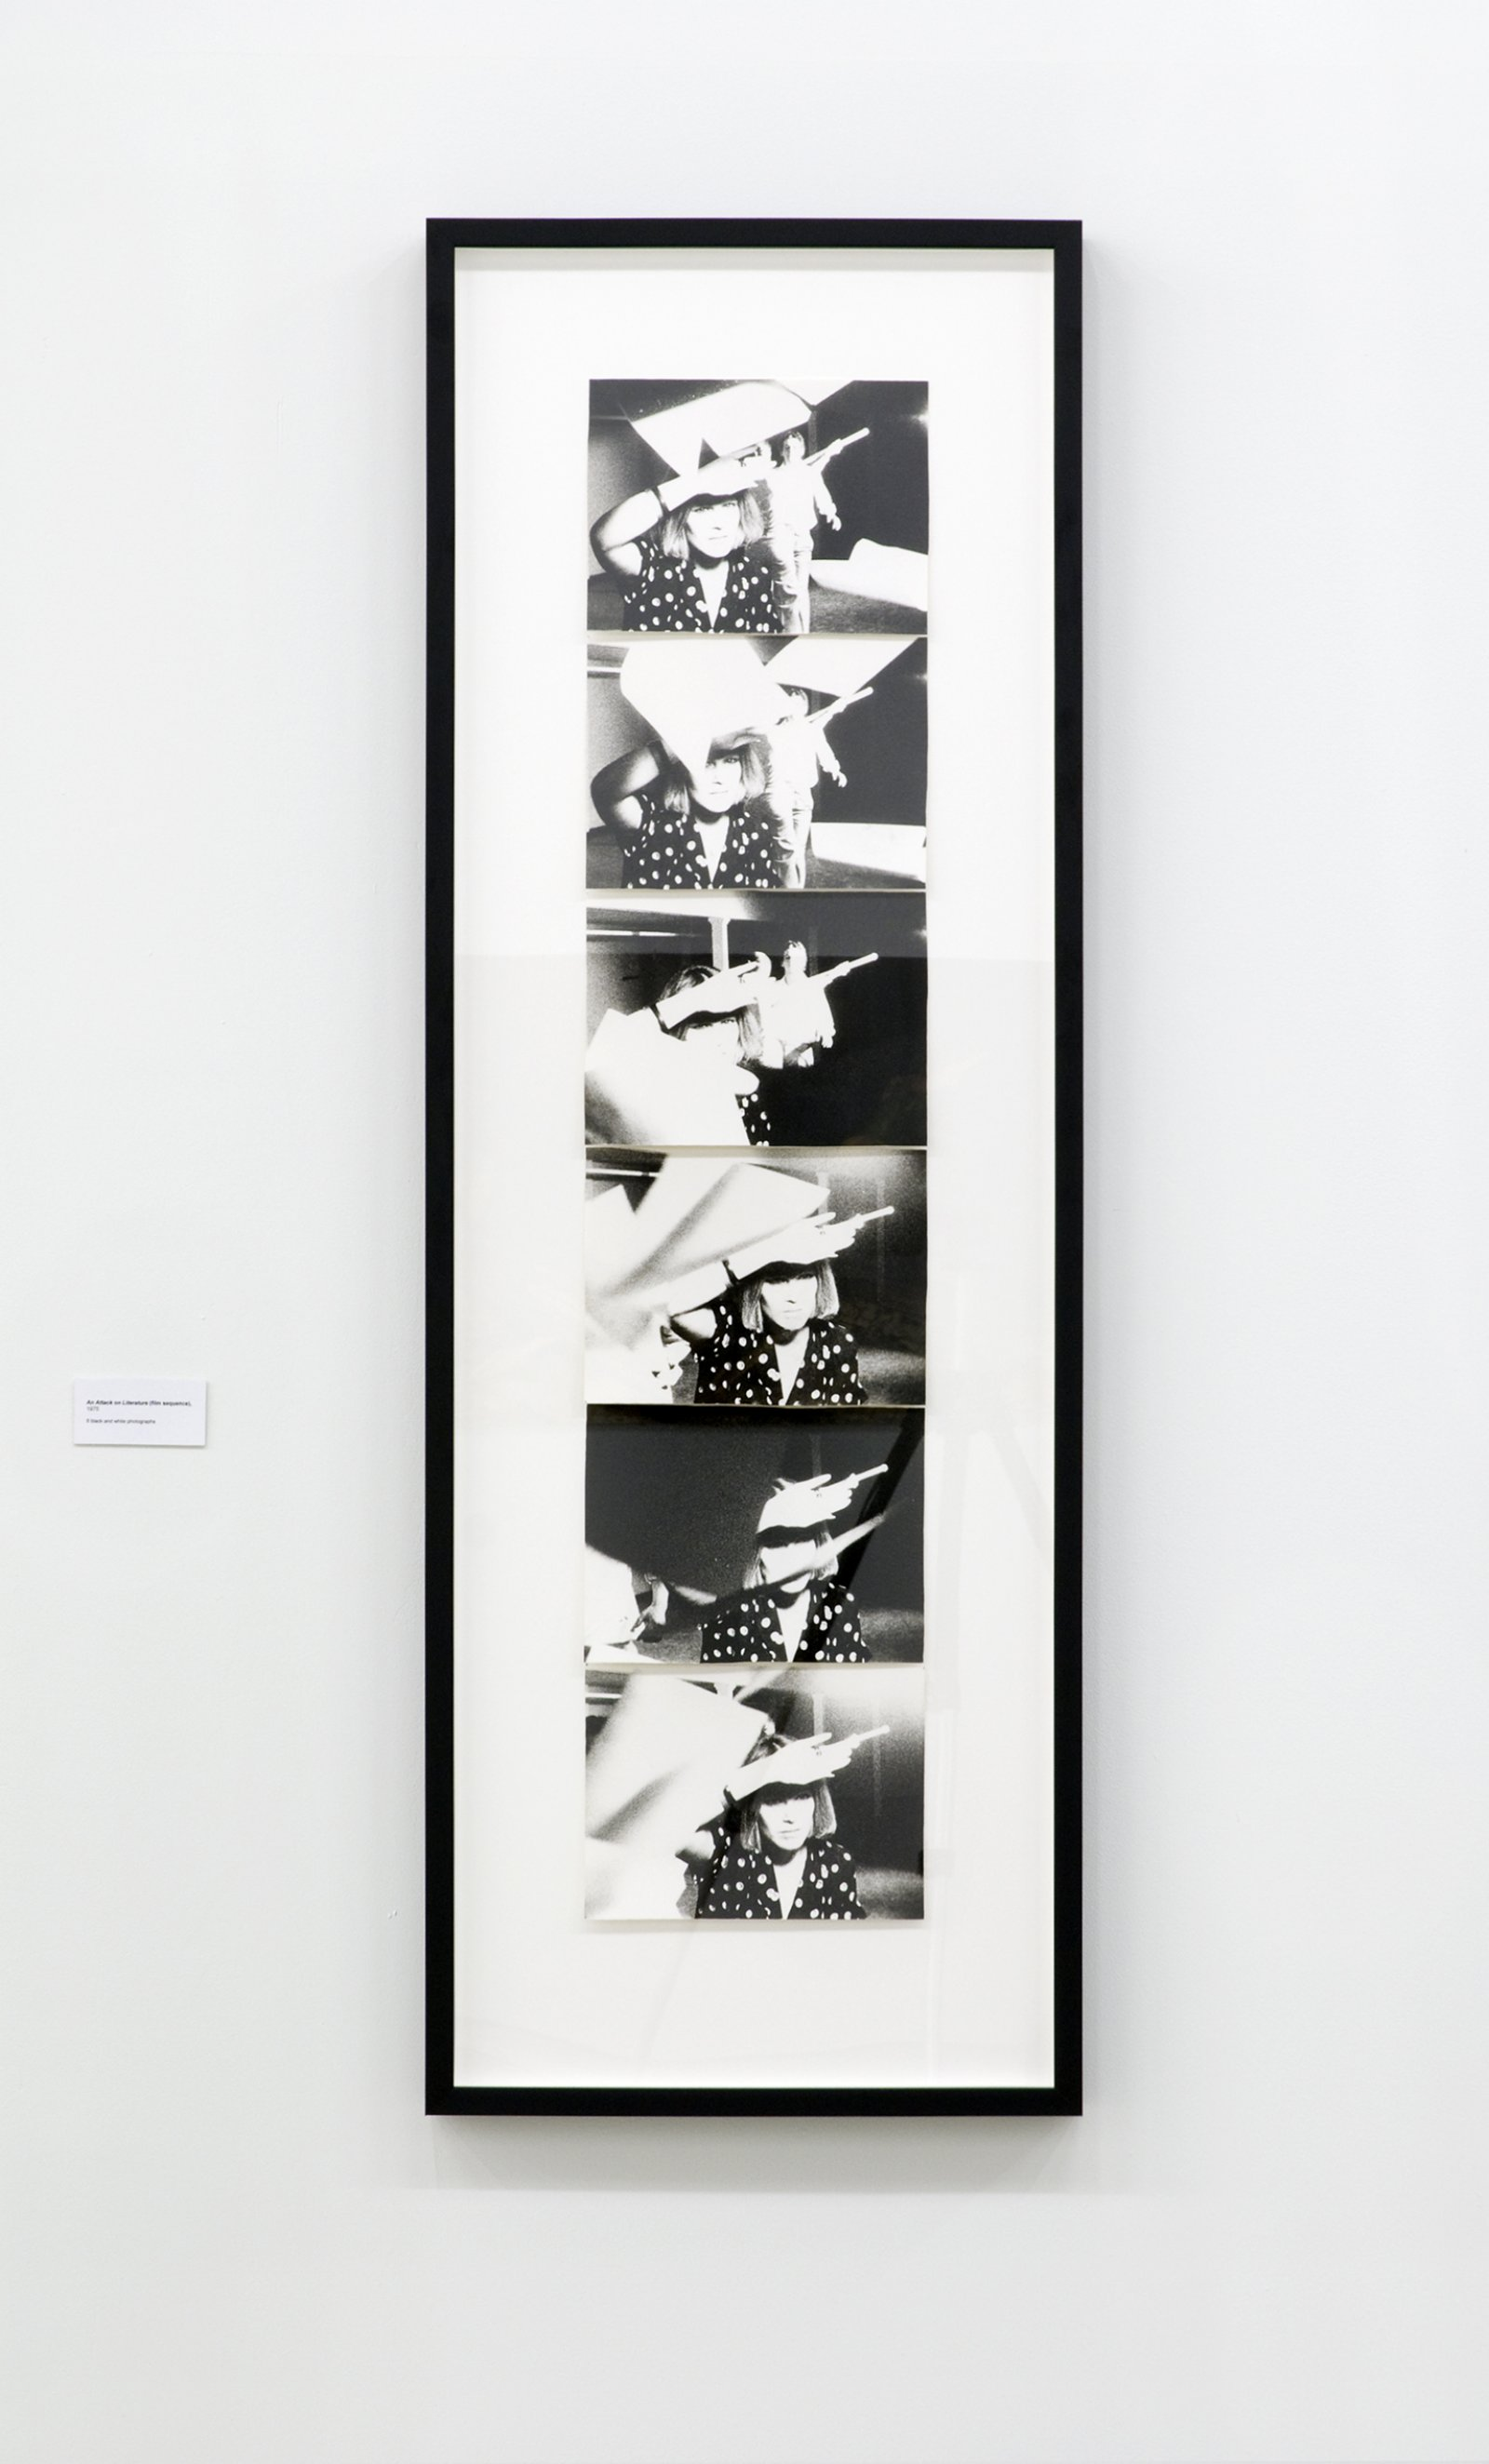 Ian Wallace, An Attack on Literature (film sequence), 1975, 6 black and white photographs, each 8 x 10 in. (19 x 25 cm)  by Ian Wallace